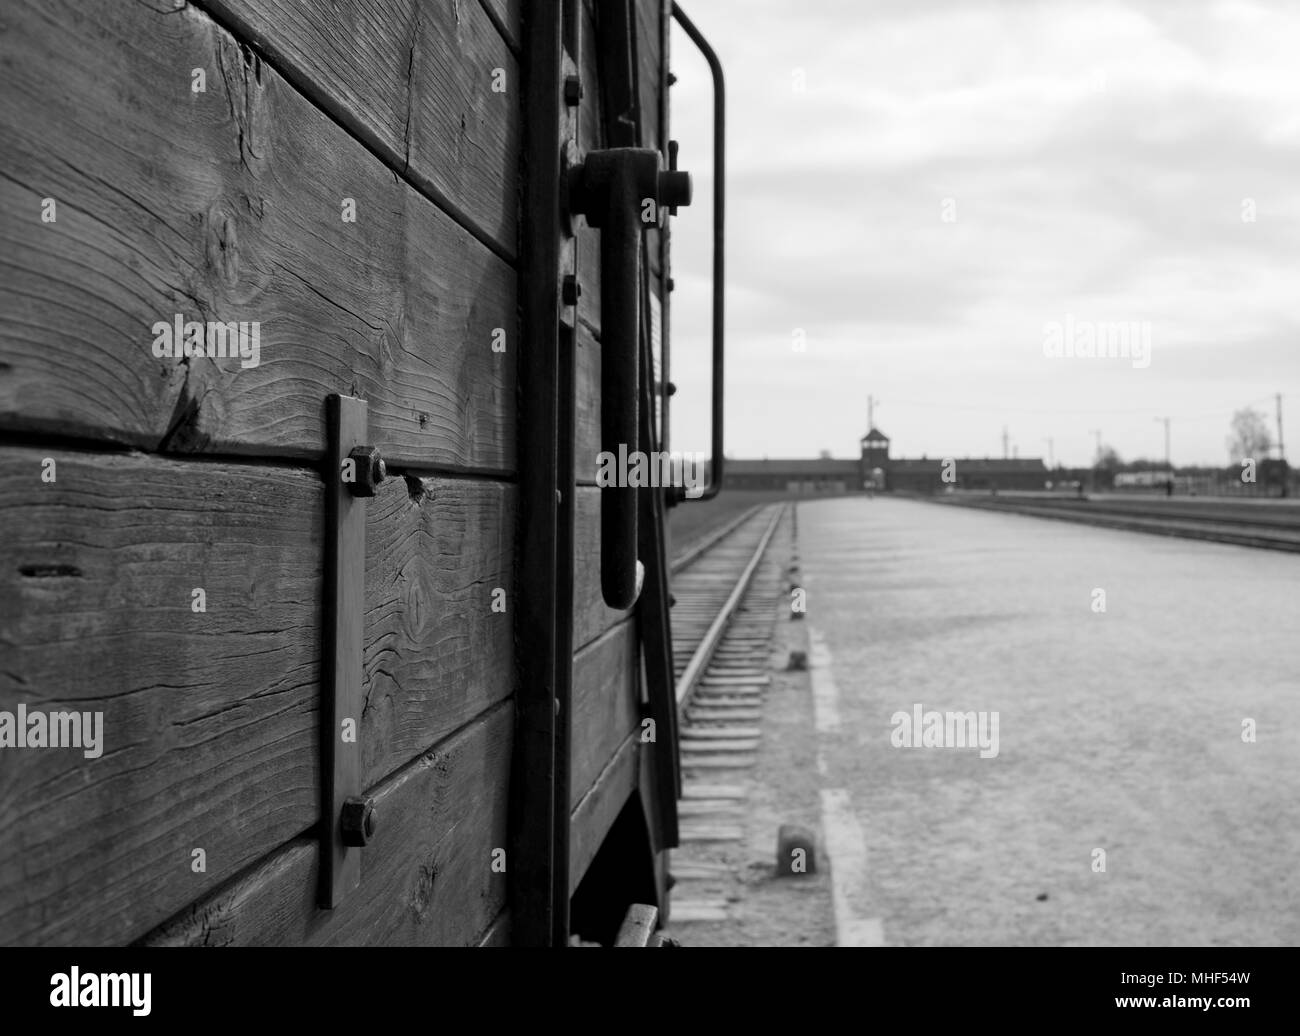 Main entrance to Auschwitz Birkenau Concentration Camp. In foreground, cattle car used to bring victims to the gas chambers. Monochrome photo. - Stock Image